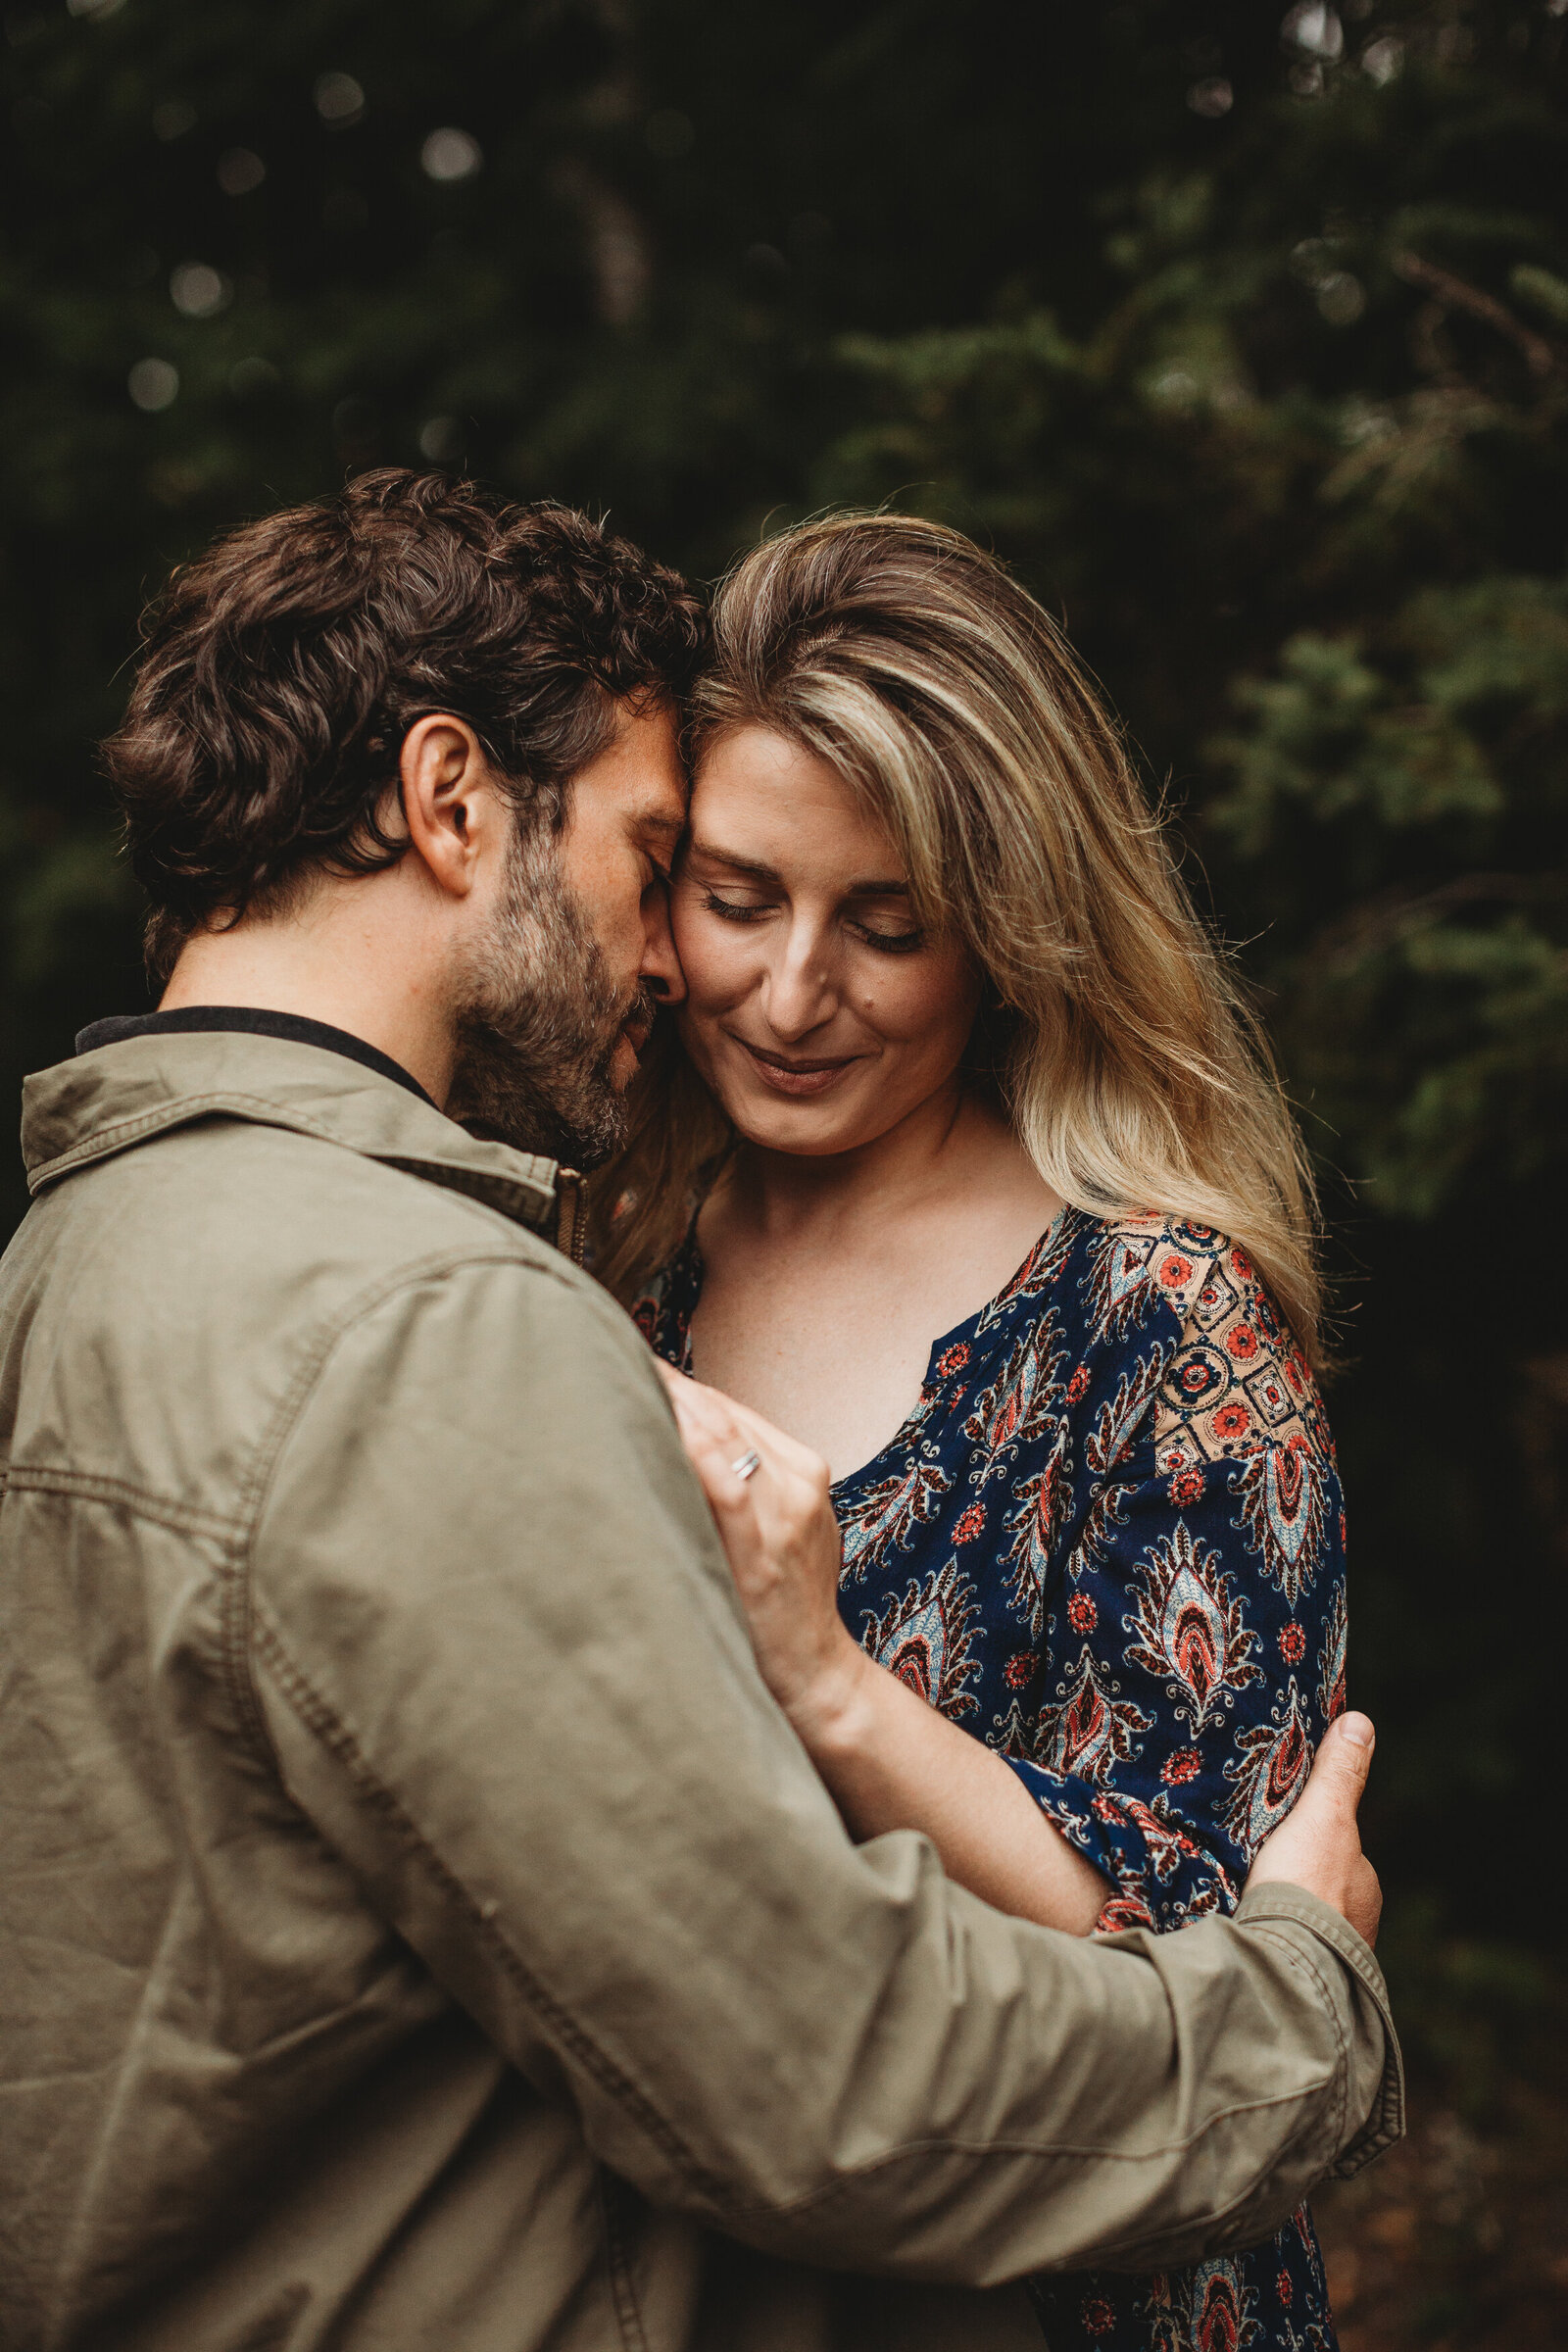 intimate couples photography in massachusetts